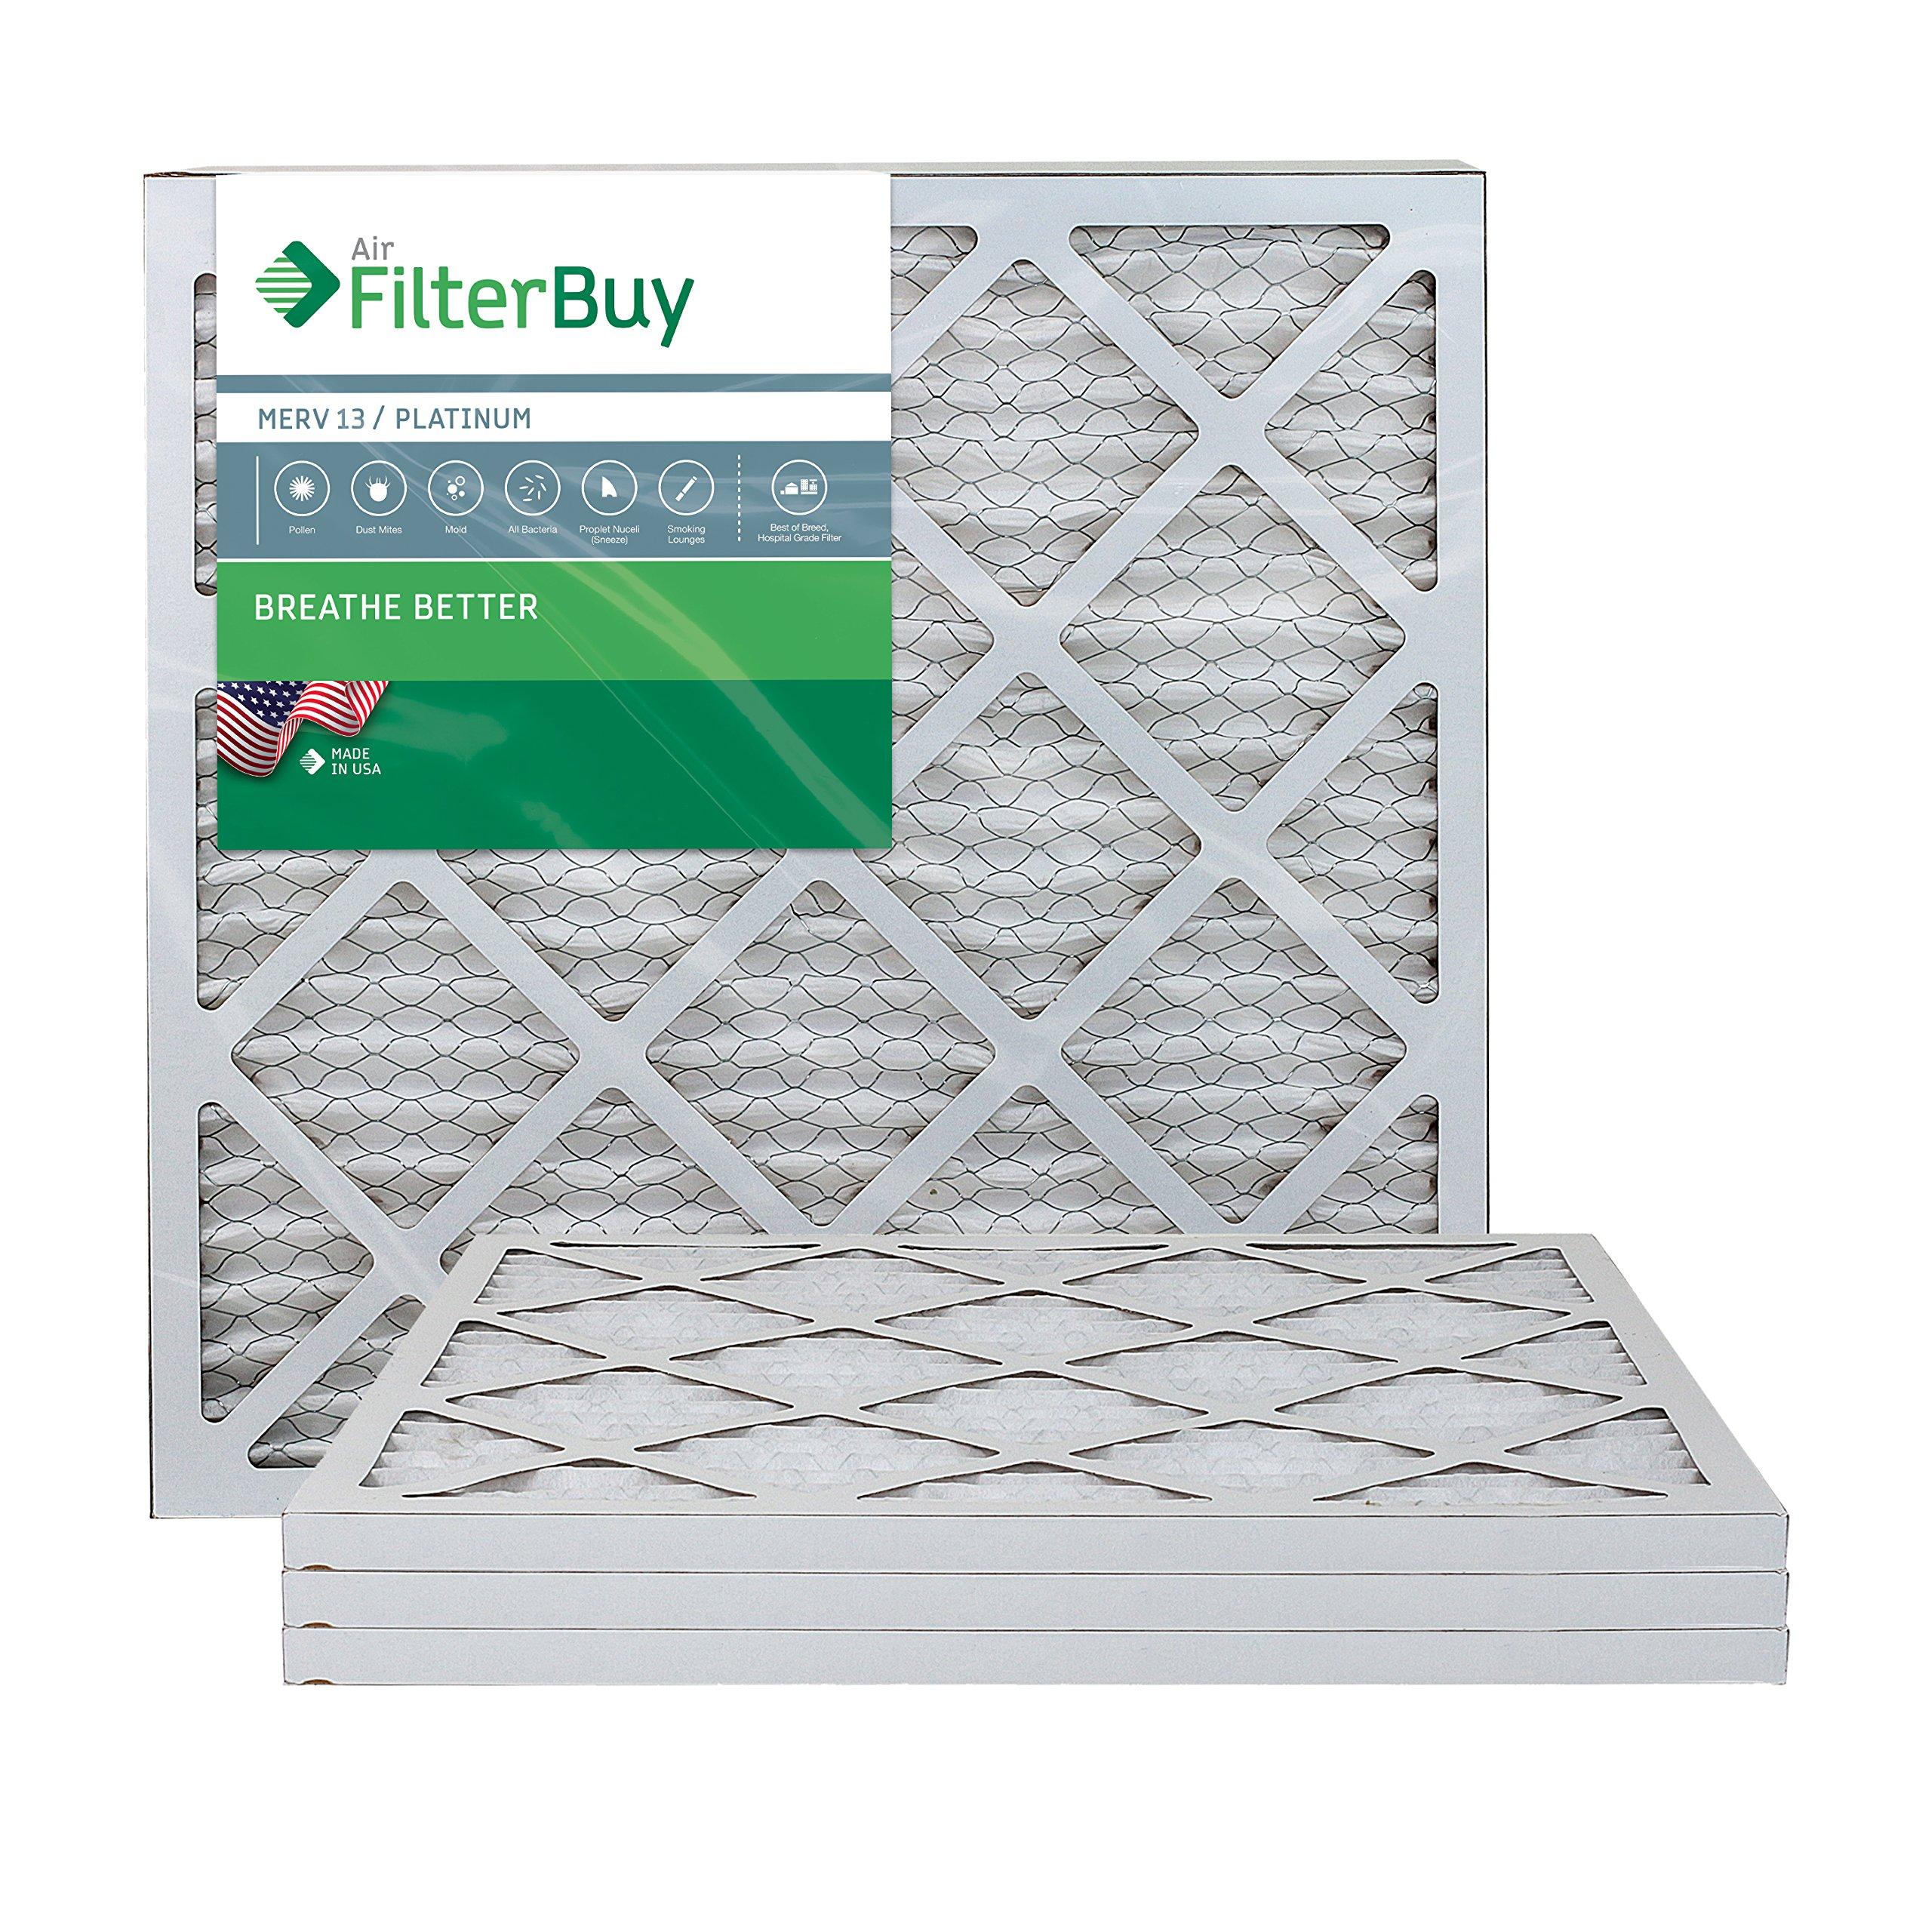 FilterBuy 20x20x1 MERV 13 Pleated AC Furnace Air Filter, (Pack of 4 Filters), 20x20x1 - Platinum by FilterBuy